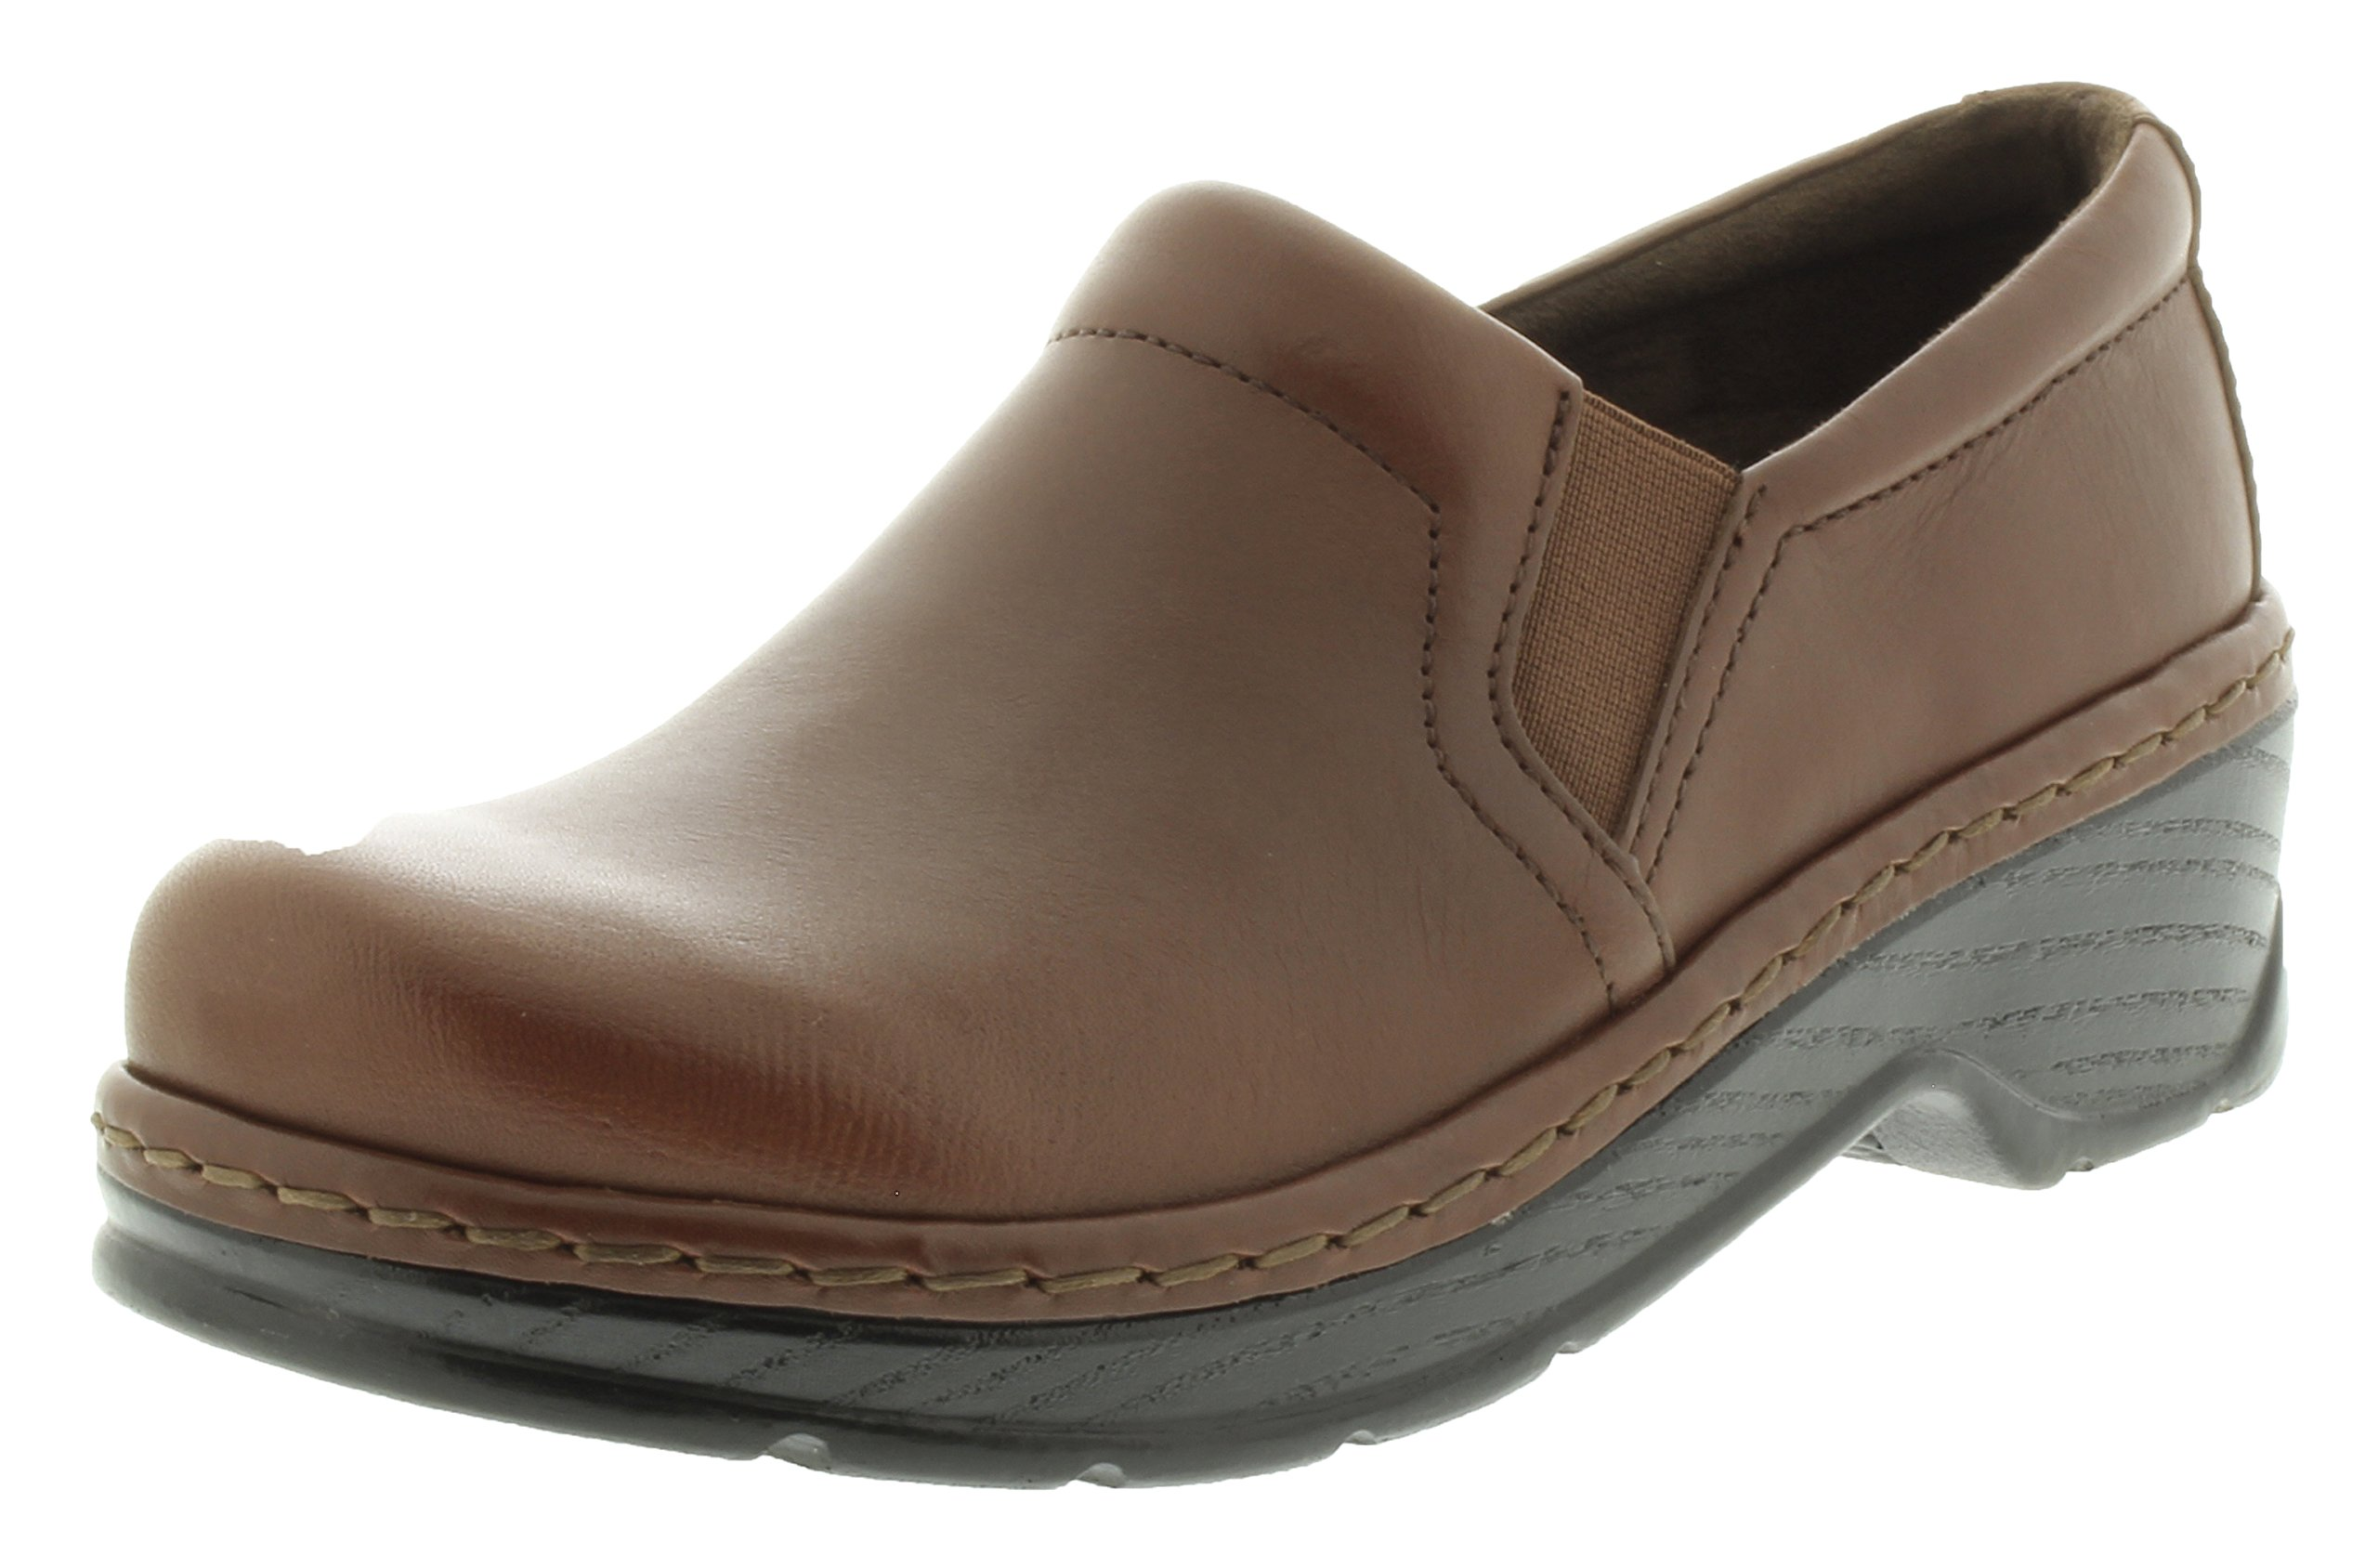 Klogs Women's Naples Clog - Mustang Brown; Size: 8 B(M) US